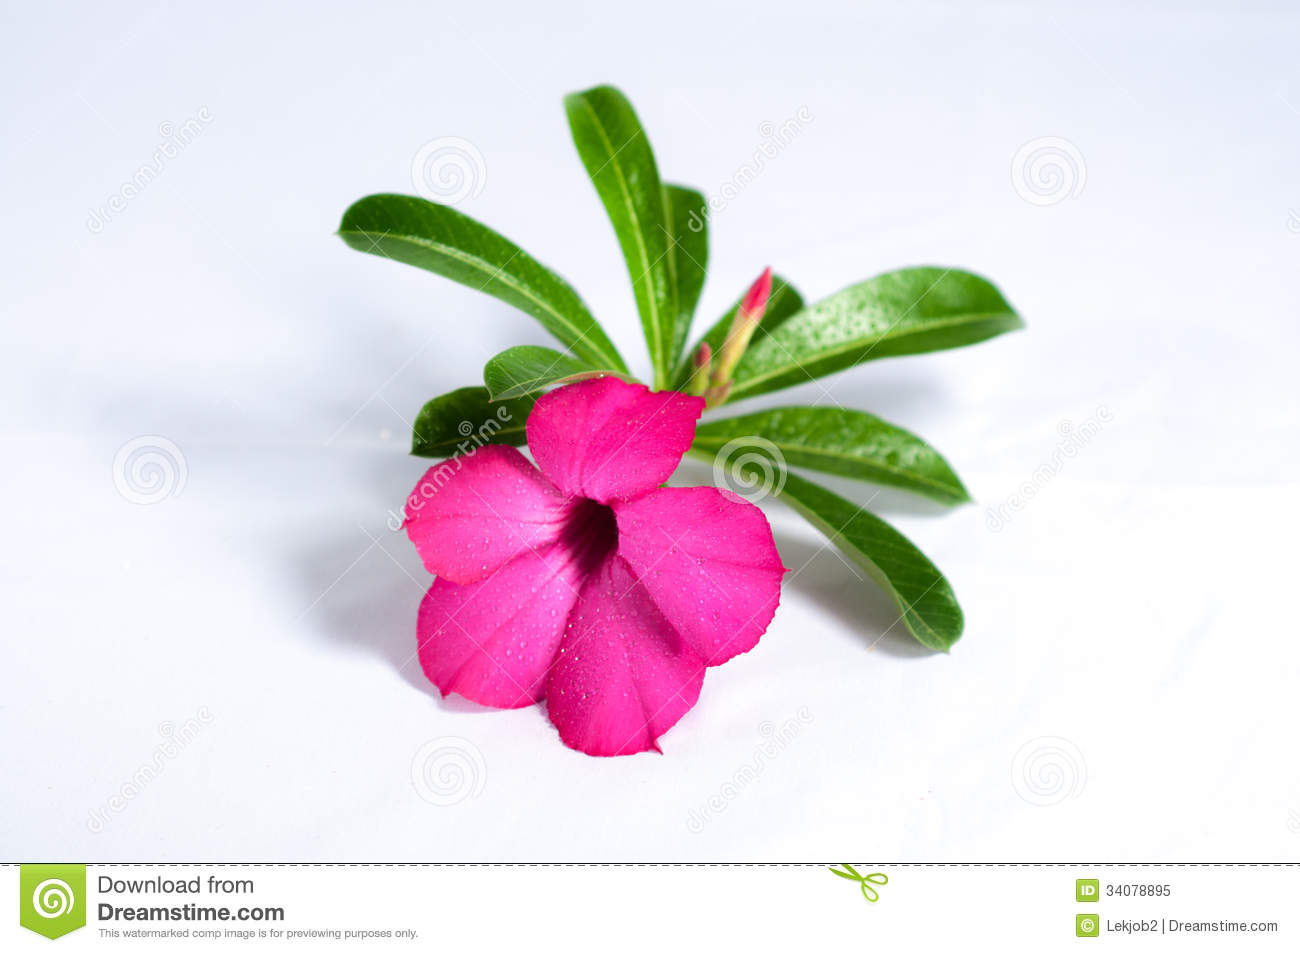 Desert Rose And Drops Of Water Royalty Free Stock Photo.